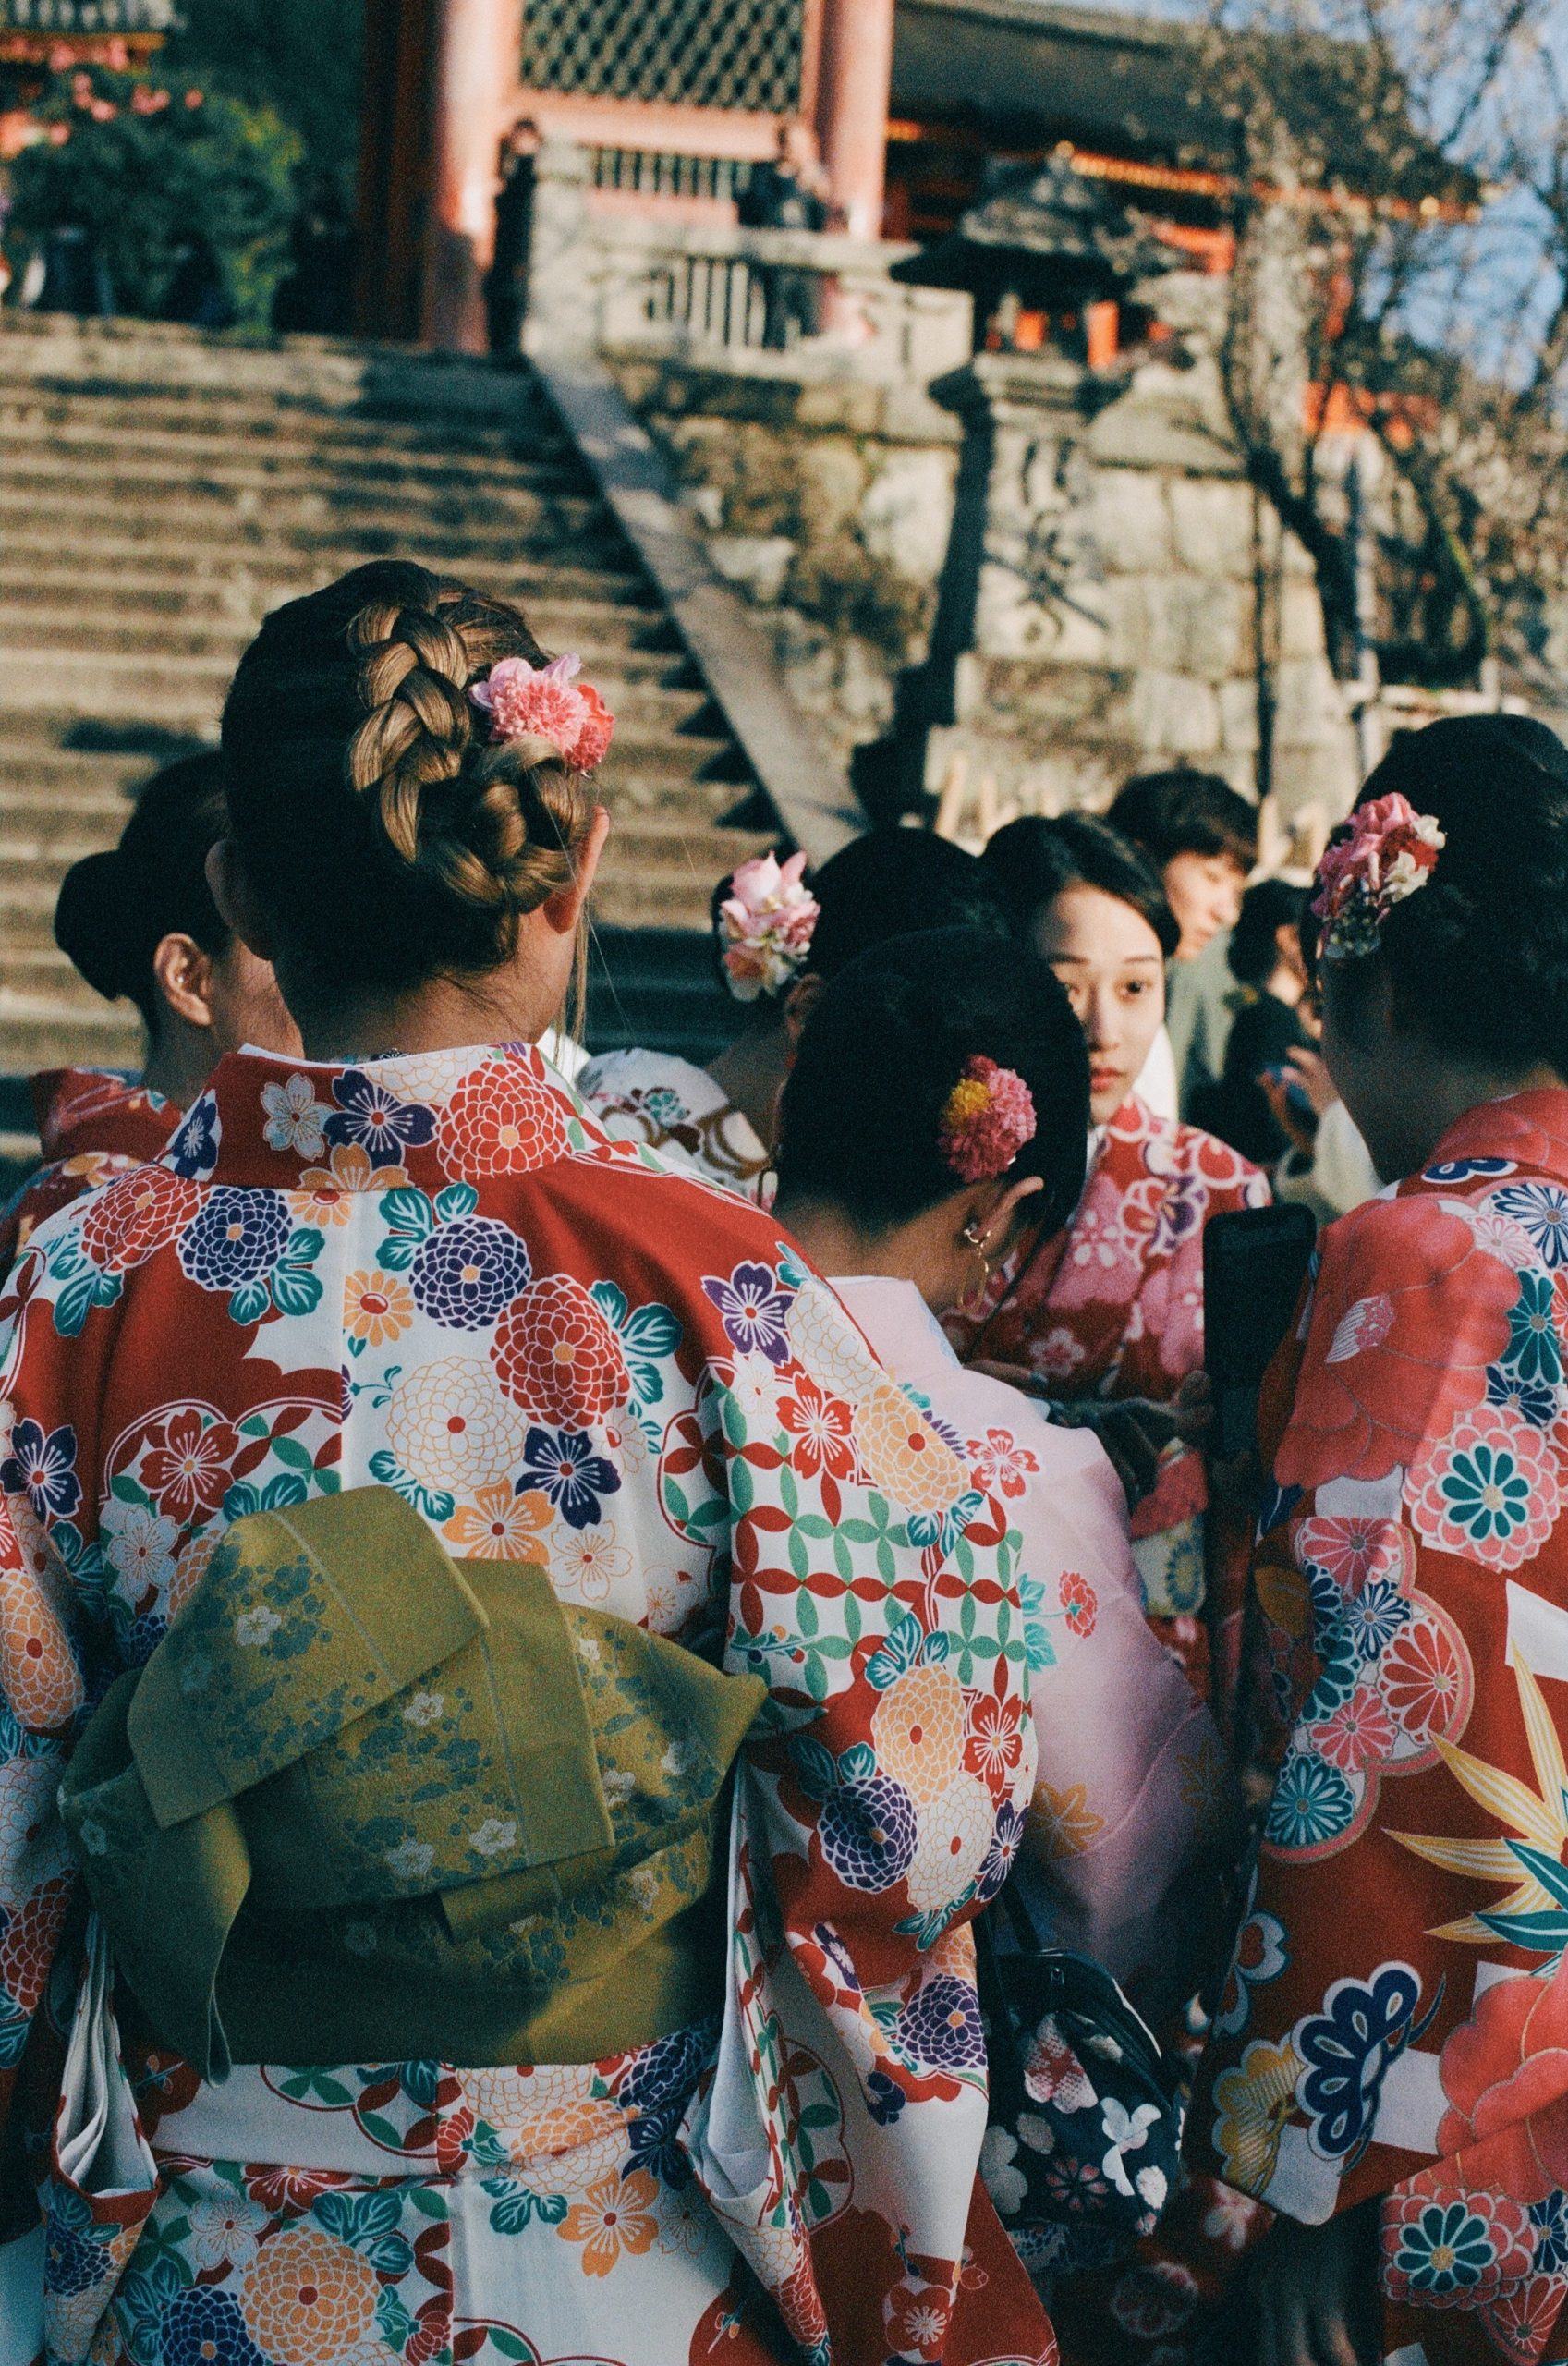 Color street photography by Pia Riverola, women in traditional dresses Kyoto, Japan